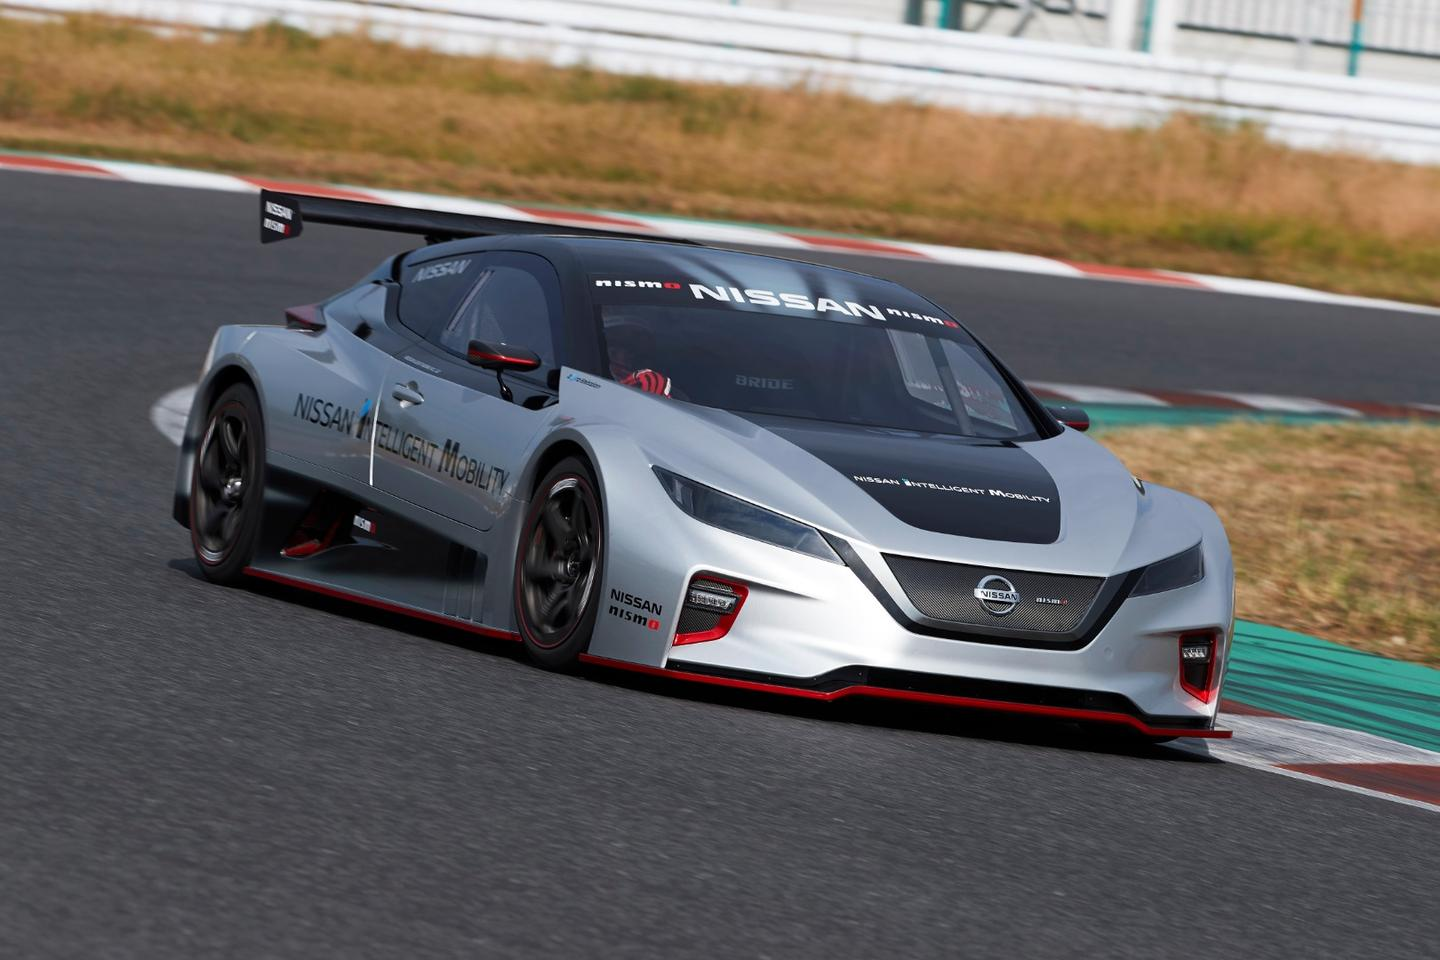 Nissan's latest Leaf Nismo RC produces 240 kW of power and 640 Nm of torque